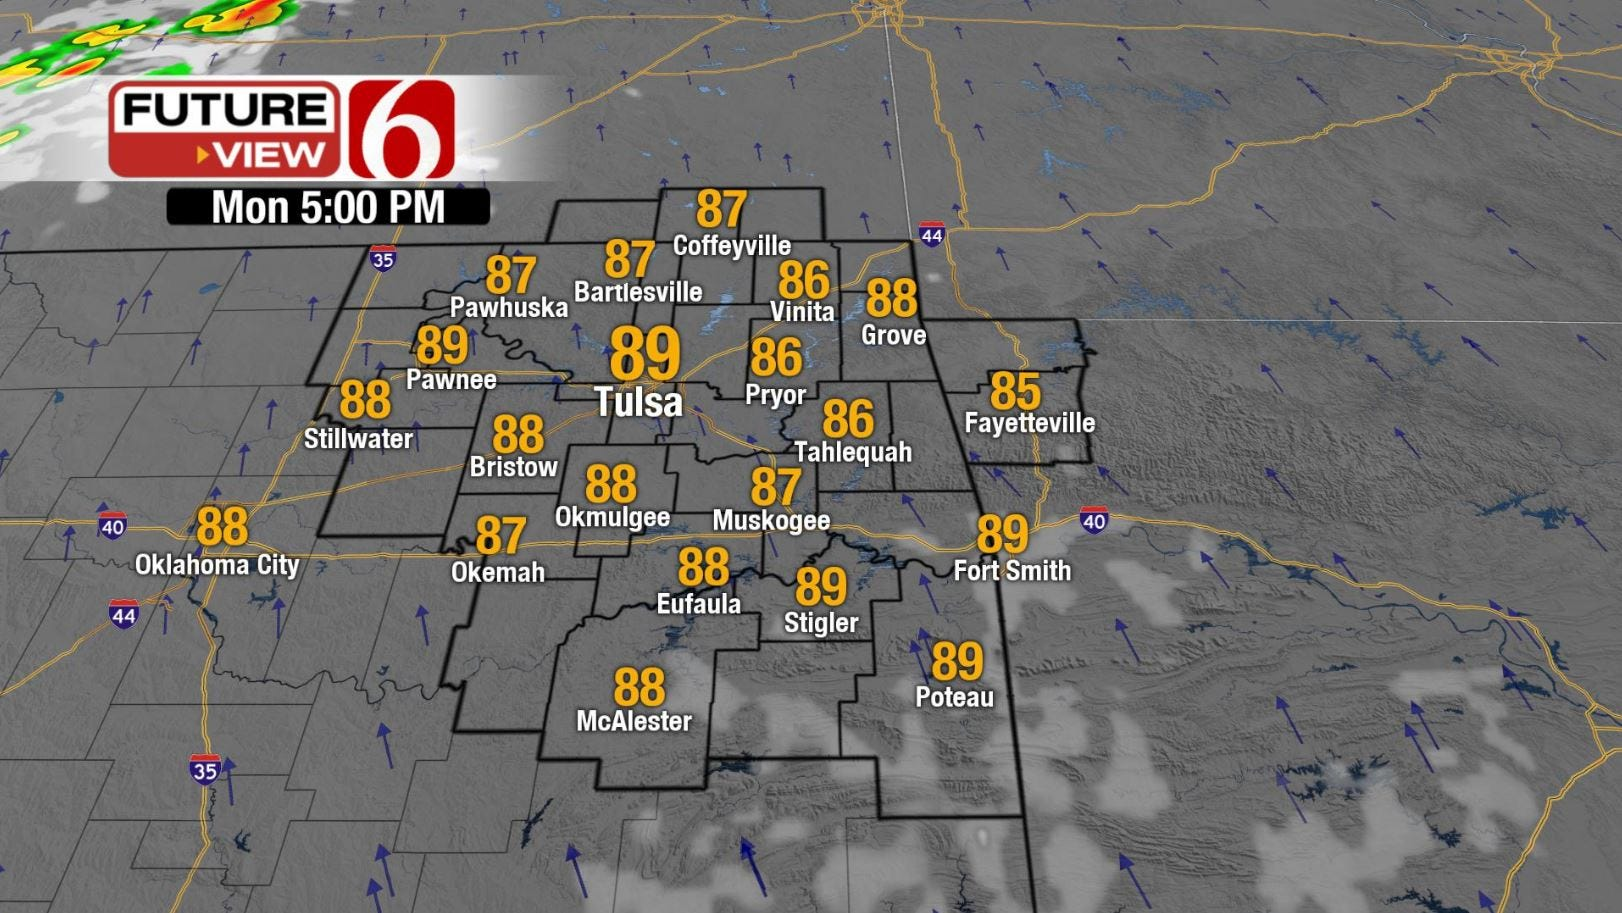 Warm, Breezy Monday Before Storms Later In The Week